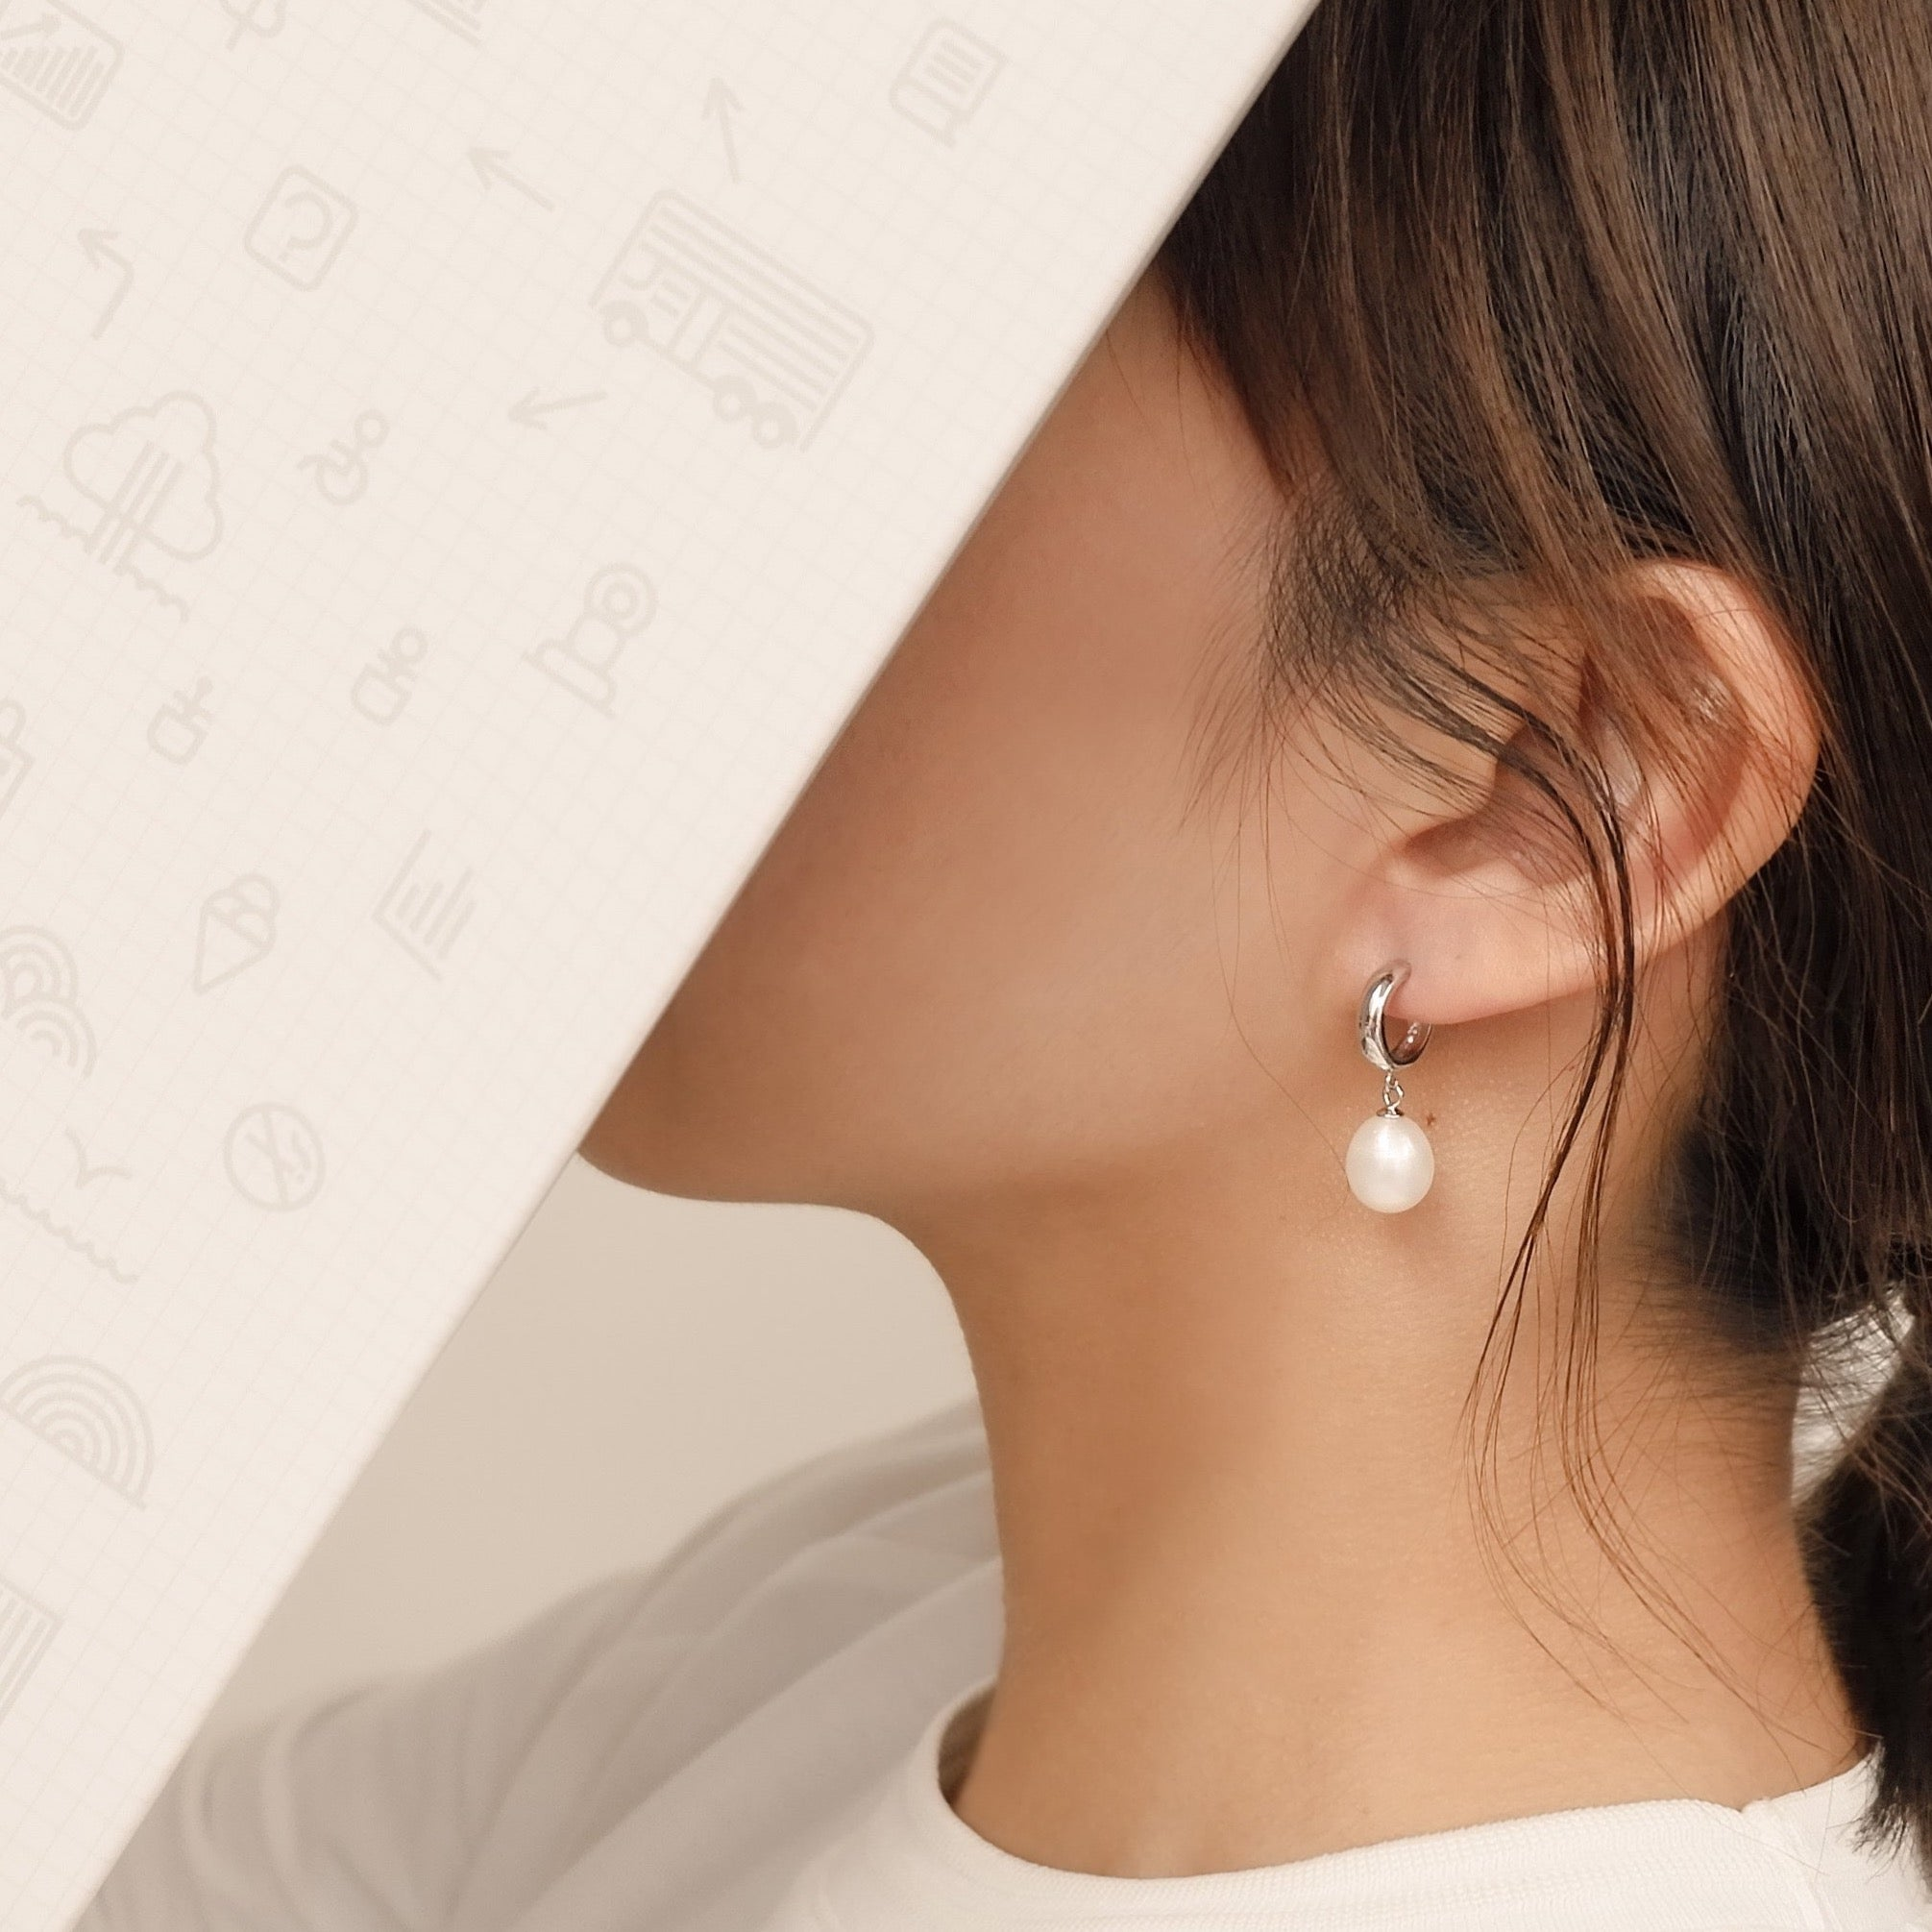 STERLING SILVER HOOP WITH DROP PEARL EARRINGS (2COLORS)